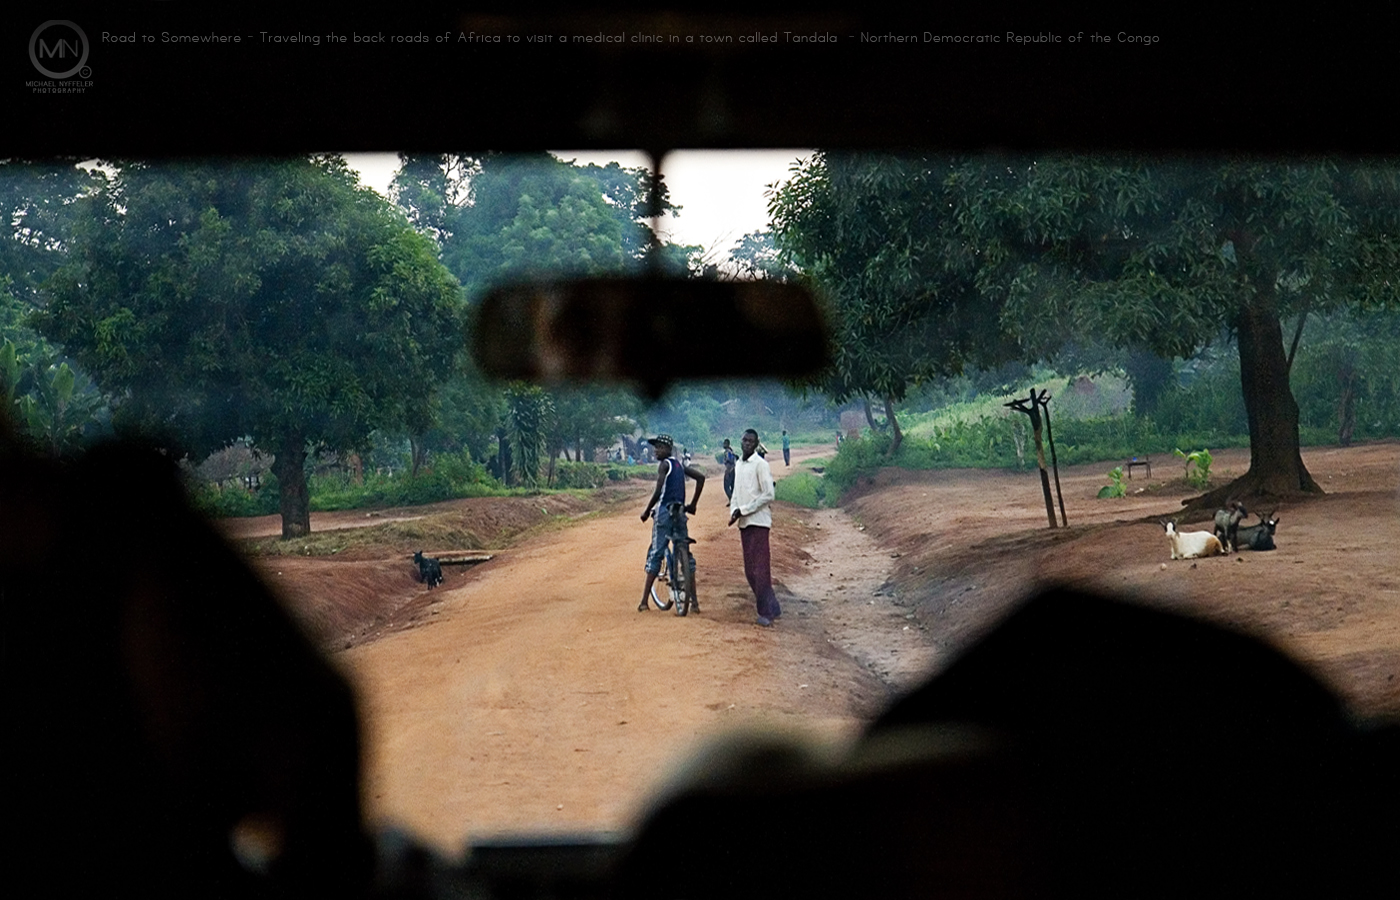 Road to Somewhere Democratic Republic of the Congo 1400x900